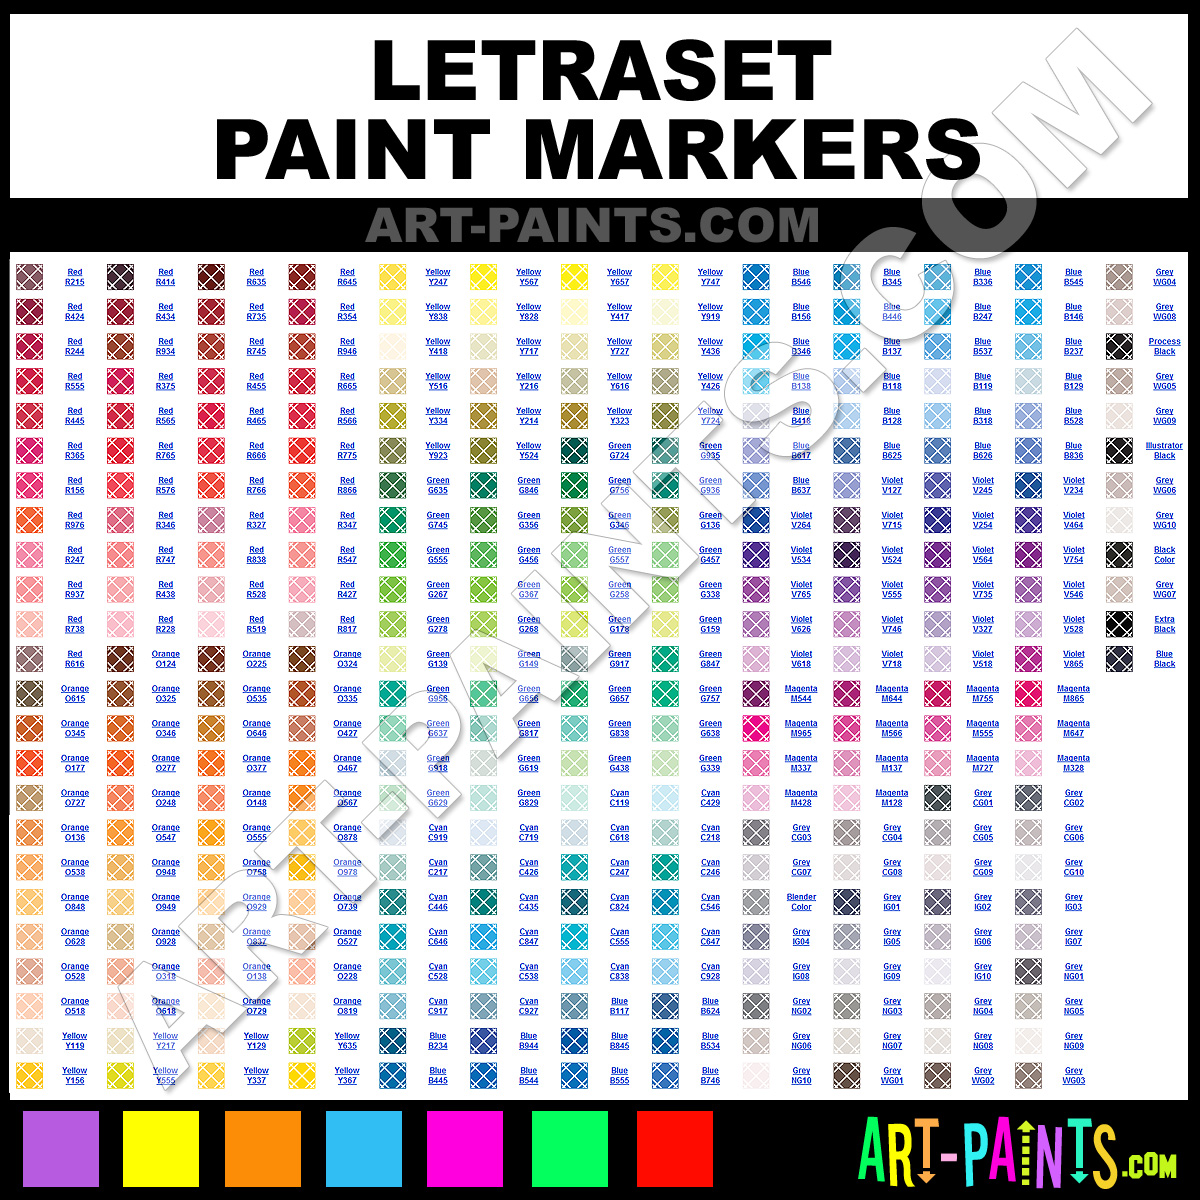 Letraset paint marker paint brands and marking pens letraset letraset nvjuhfo Choice Image